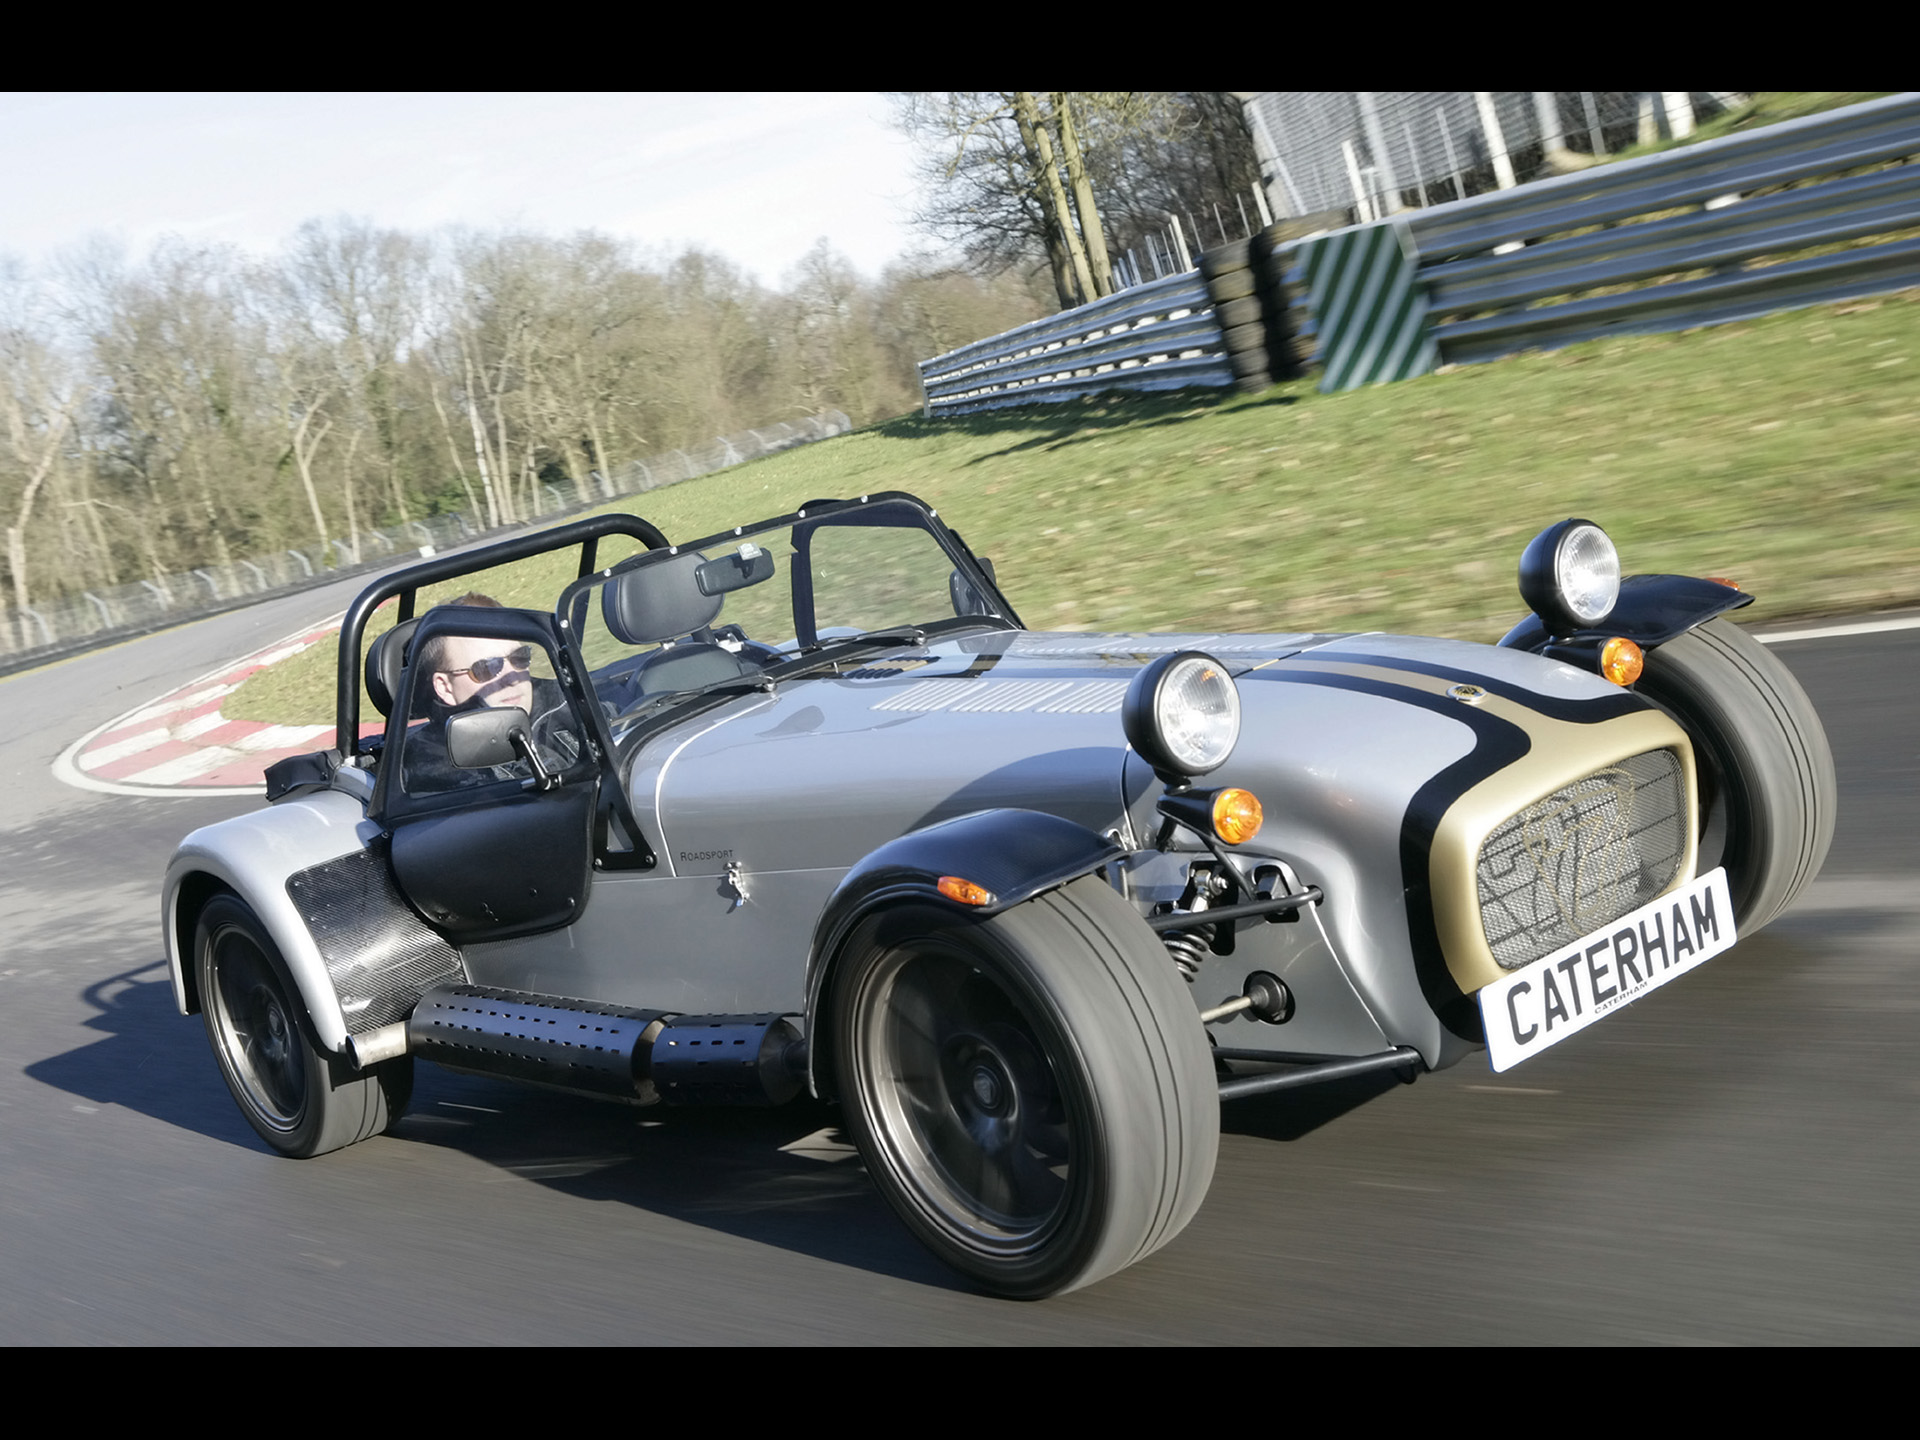 2007 Caterham Seven Roadsport Images. Photo: Caterham-